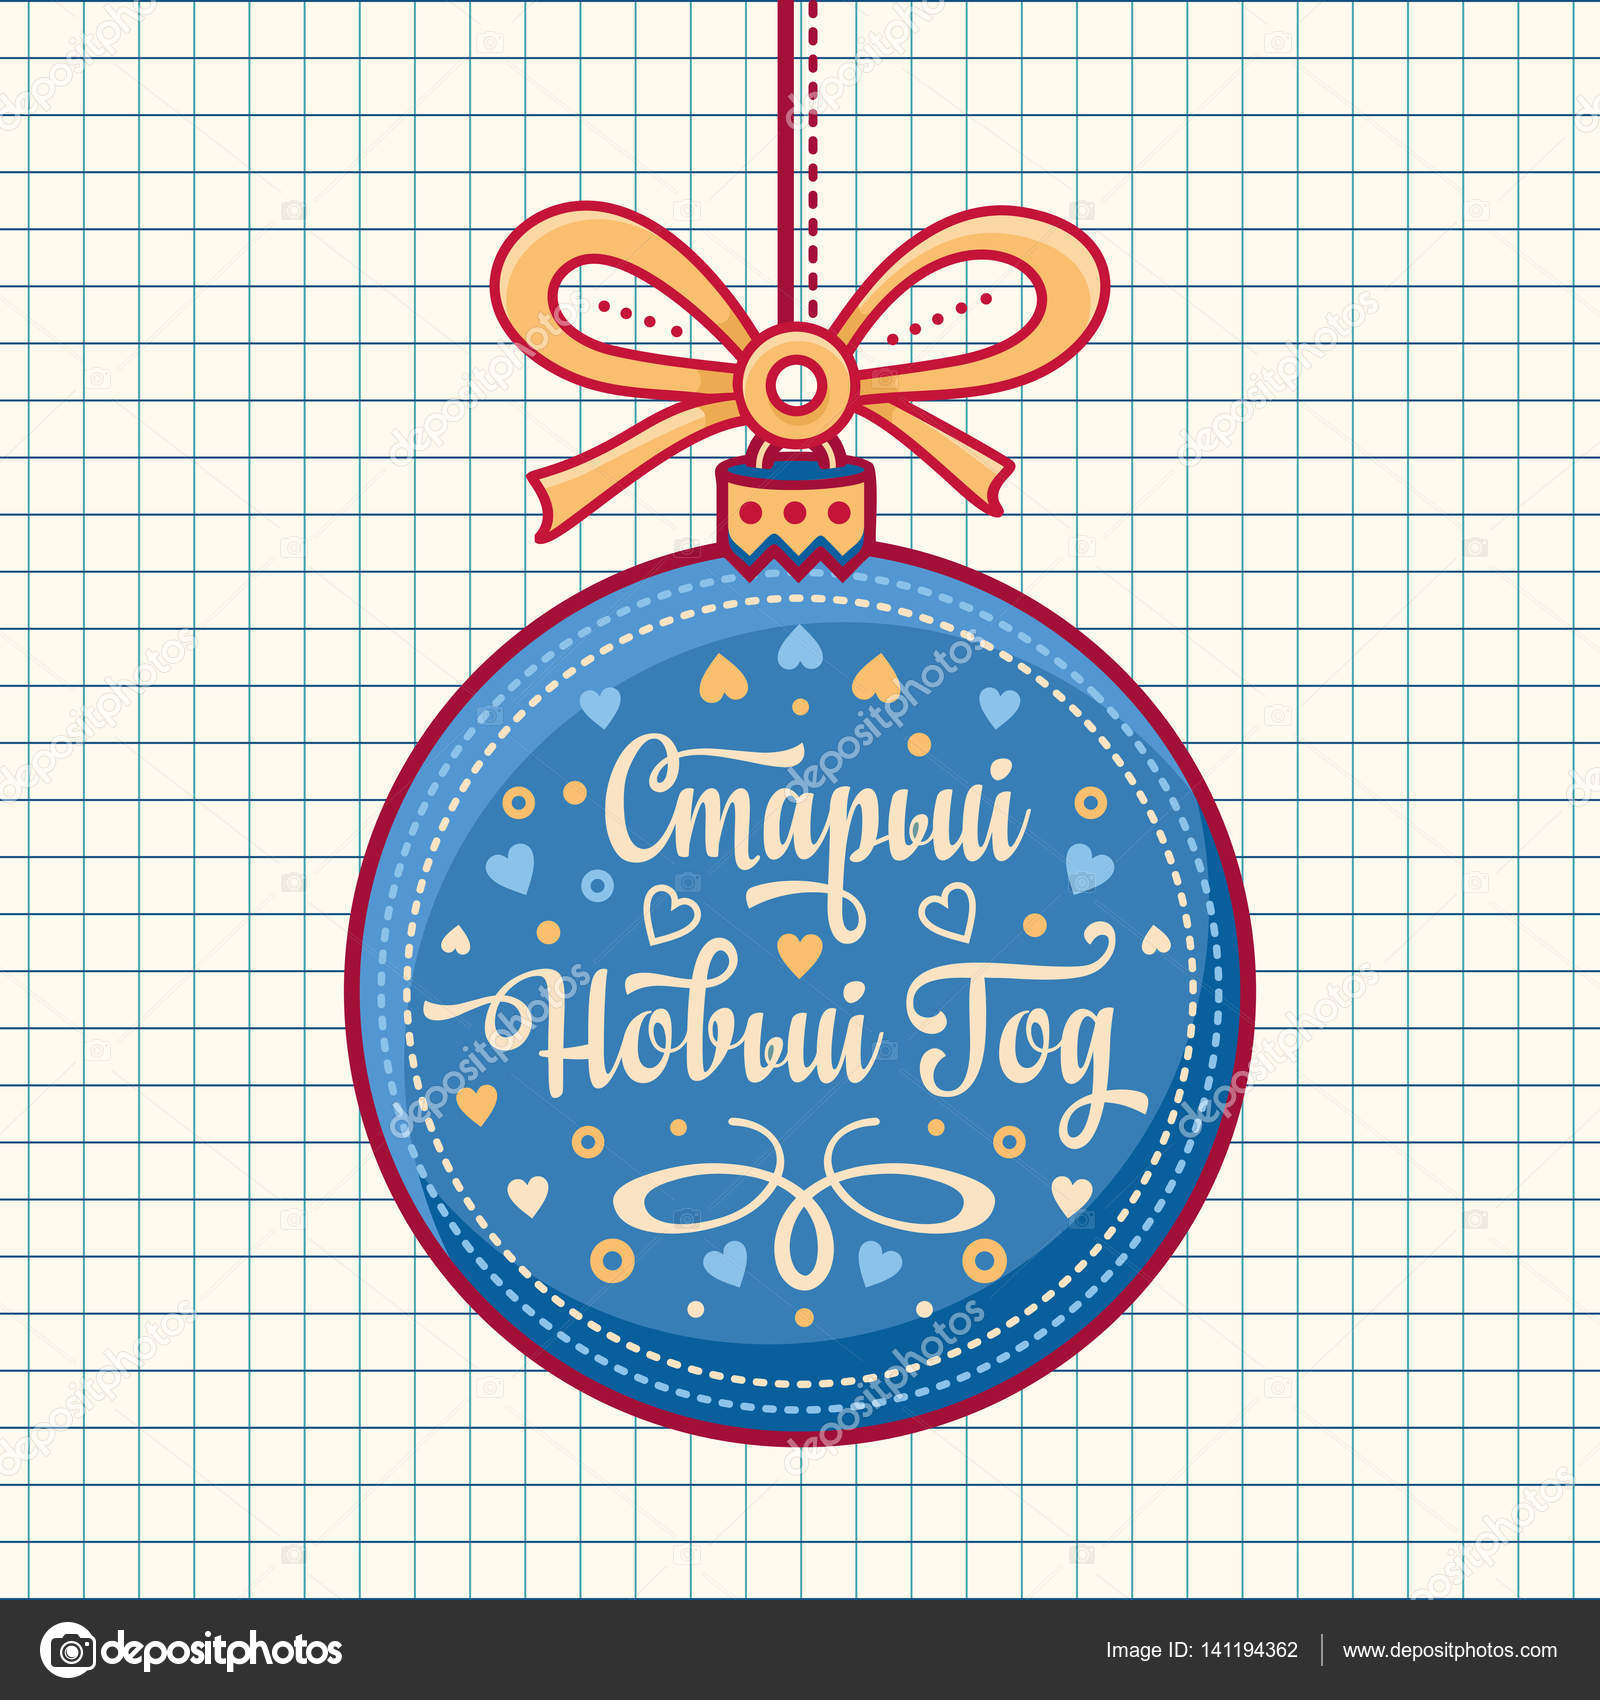 New year background phrase in russian language warm wishes for phrase in russian language warm wishes for happy holidays stock kristyandbryce Choice Image